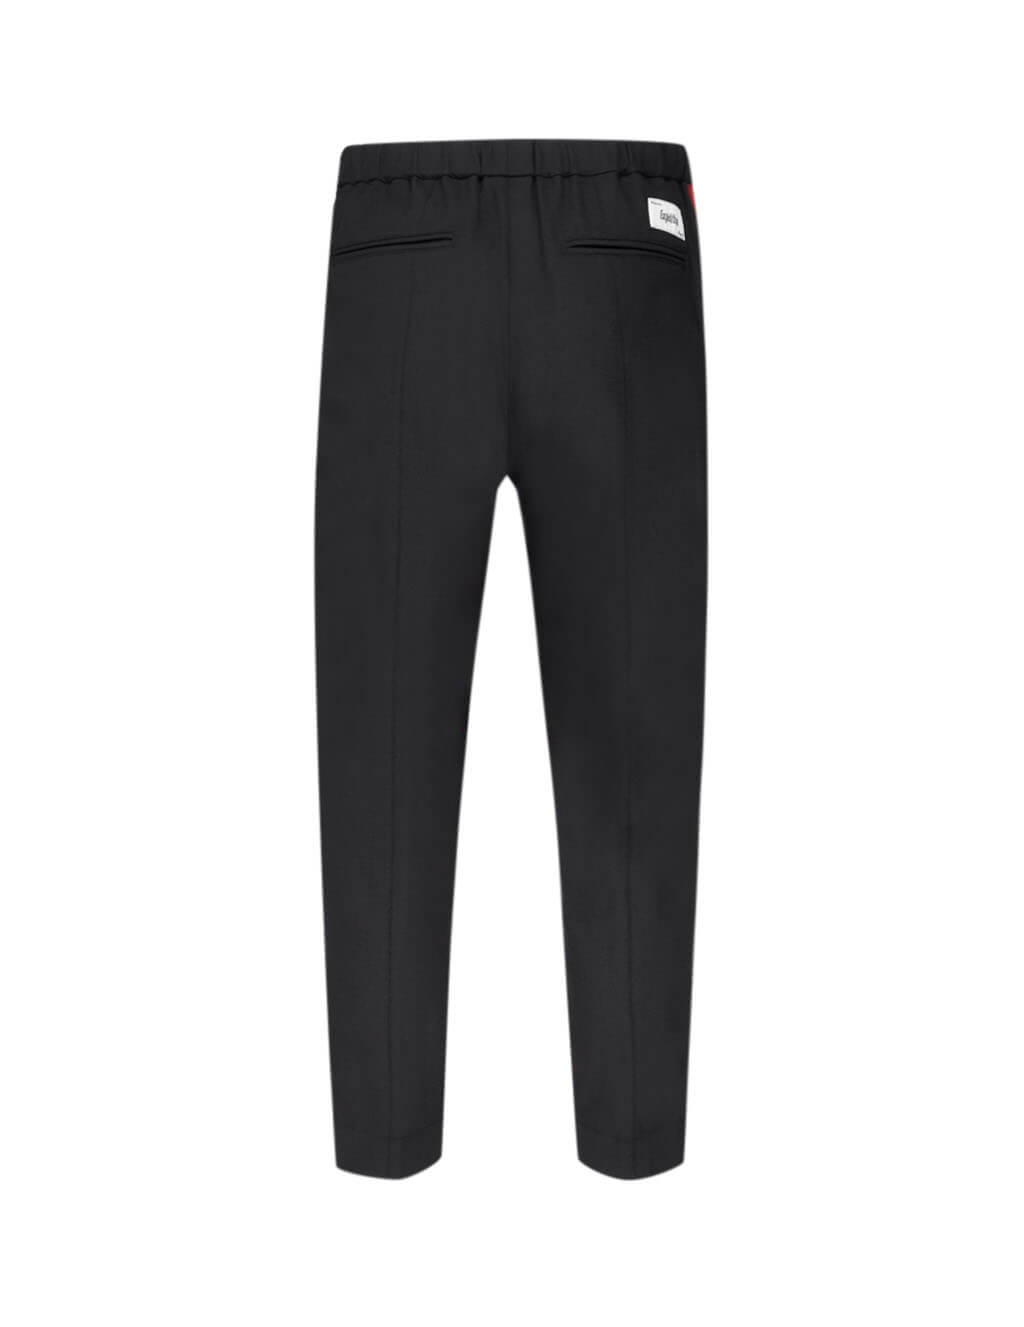 KENZO Men's Giulio Fashion Black Expedition Trousers F965PA2191RC99